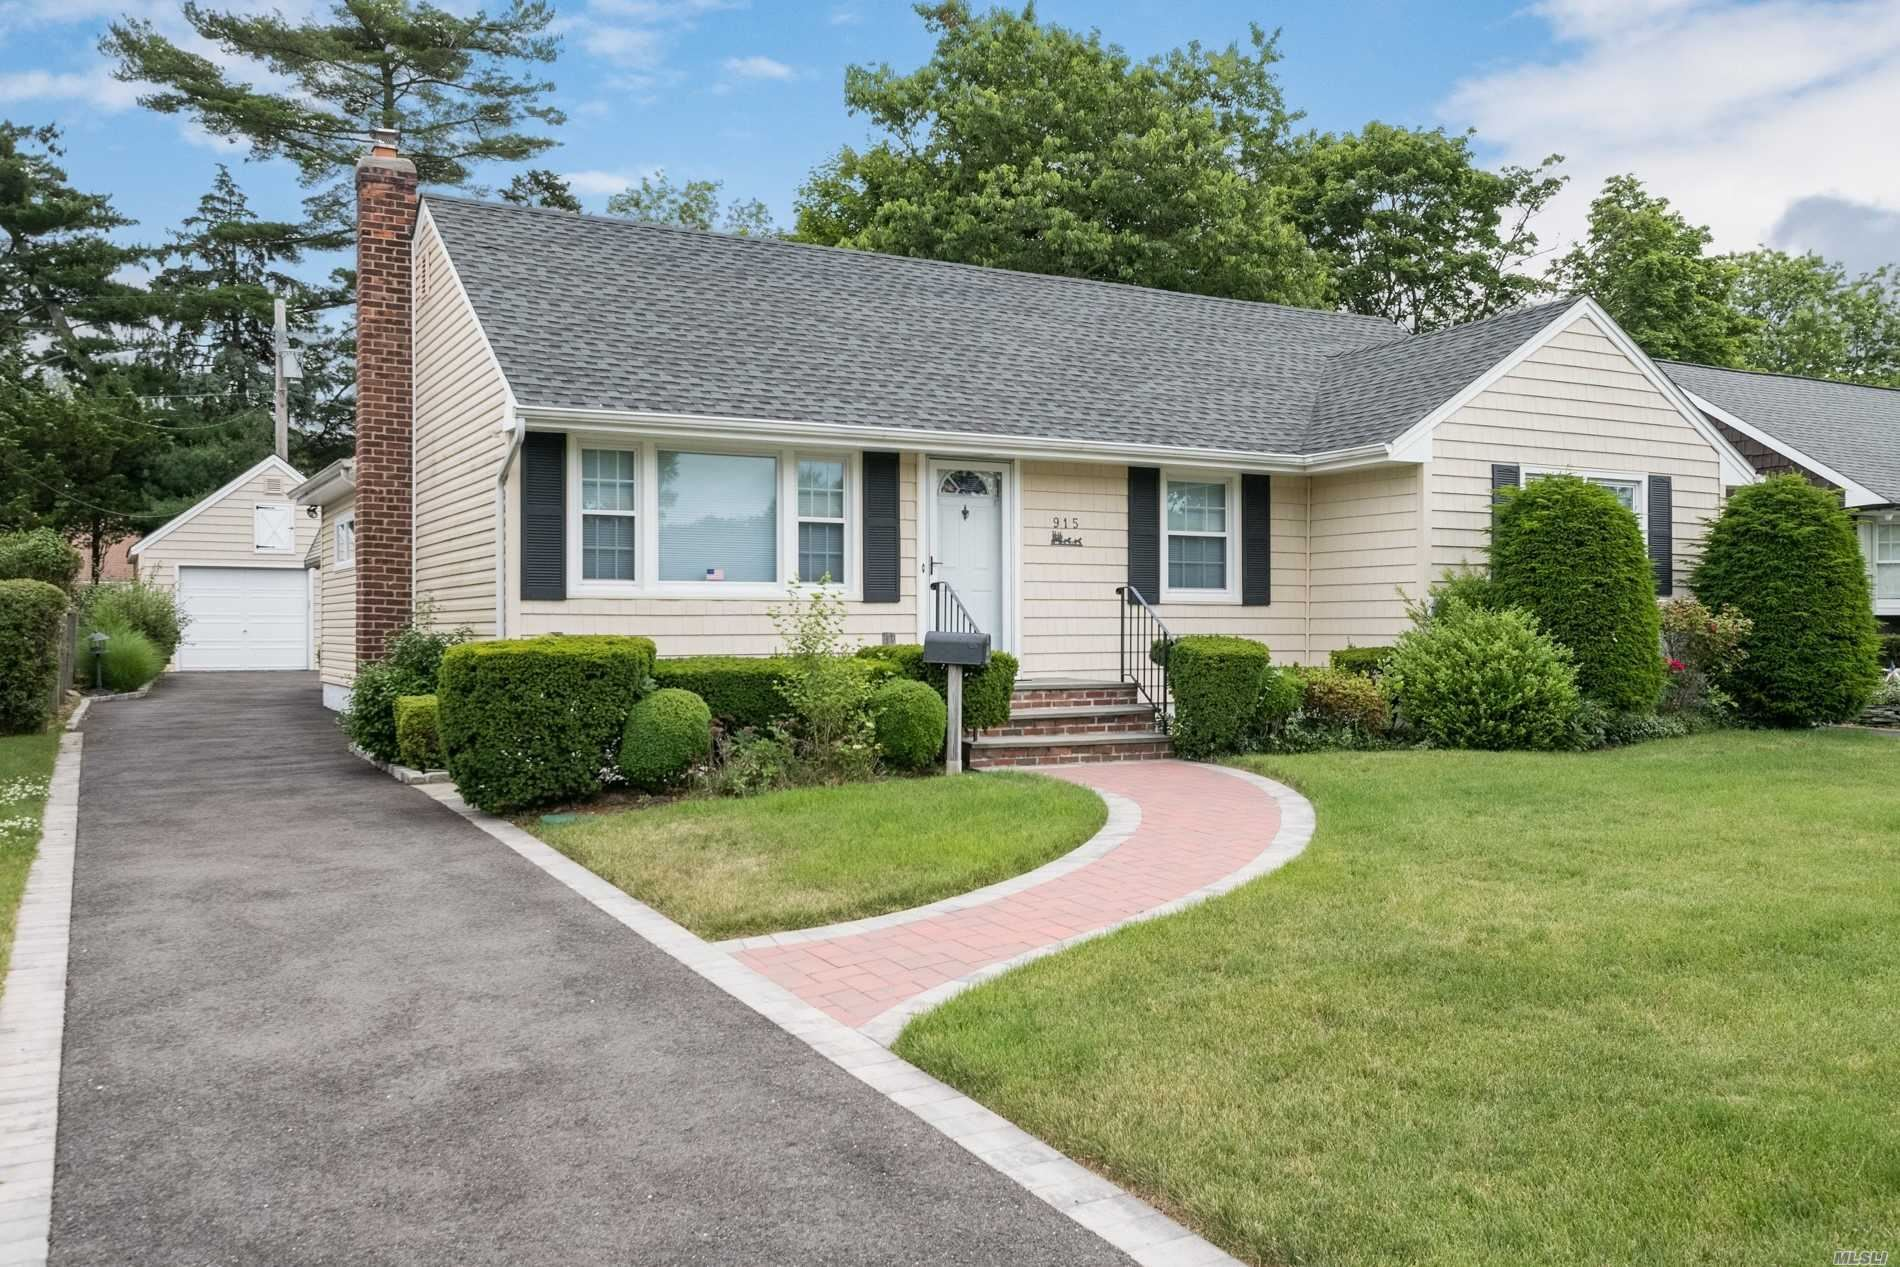 915 Annette Dr, Wantagh, NY 11793 - MLS#: 3226408